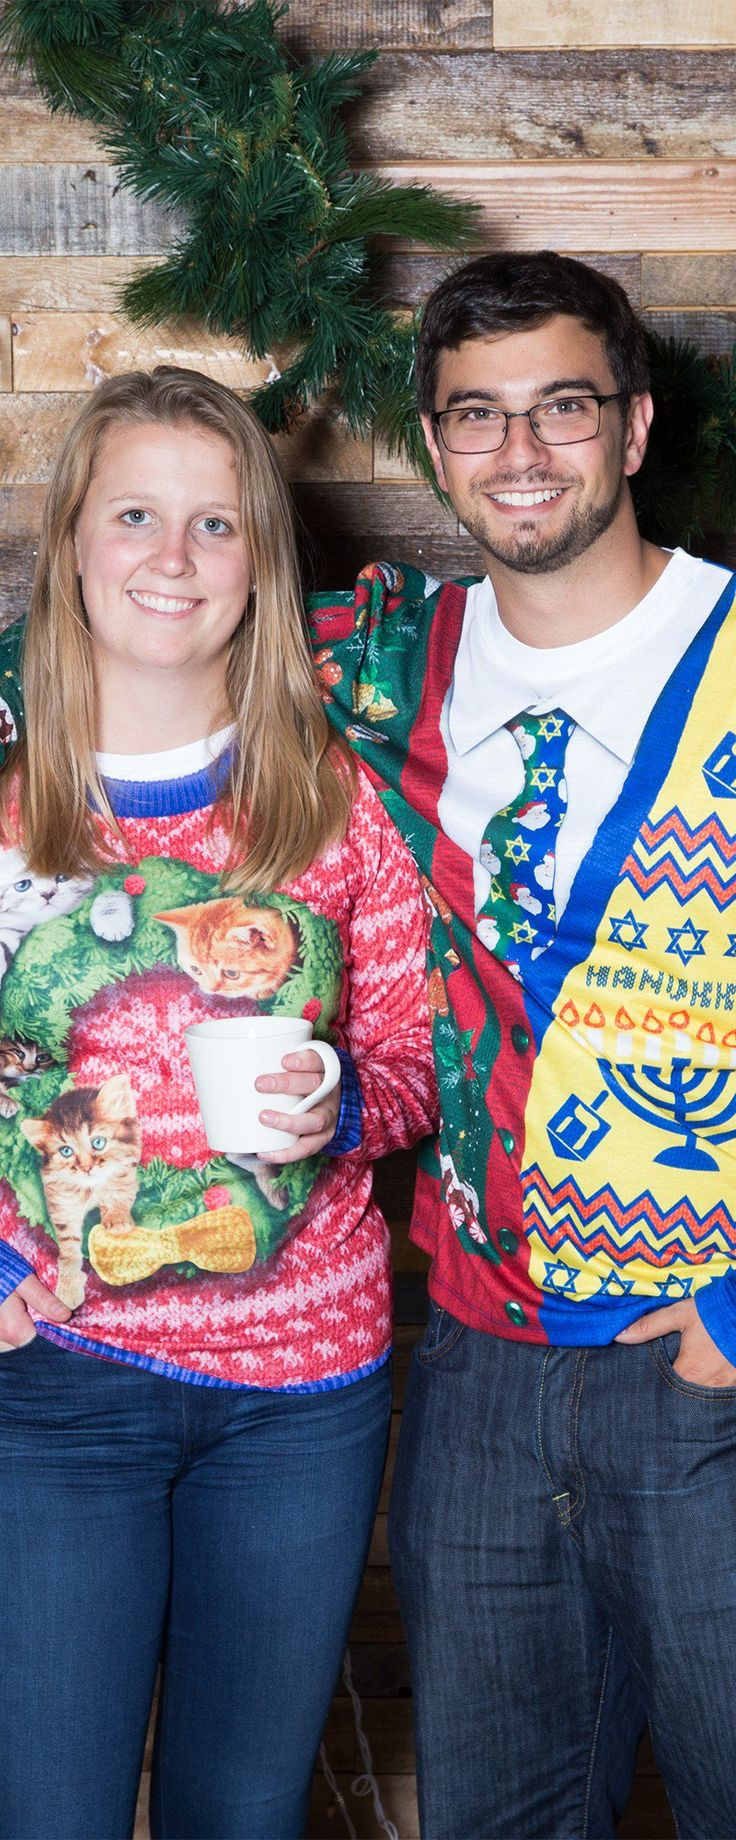 Festive, over-the-top holiday sweaters—with no itchiness or fuss. These photo-realistic, tacky designs are printed on comfy T-shirts.